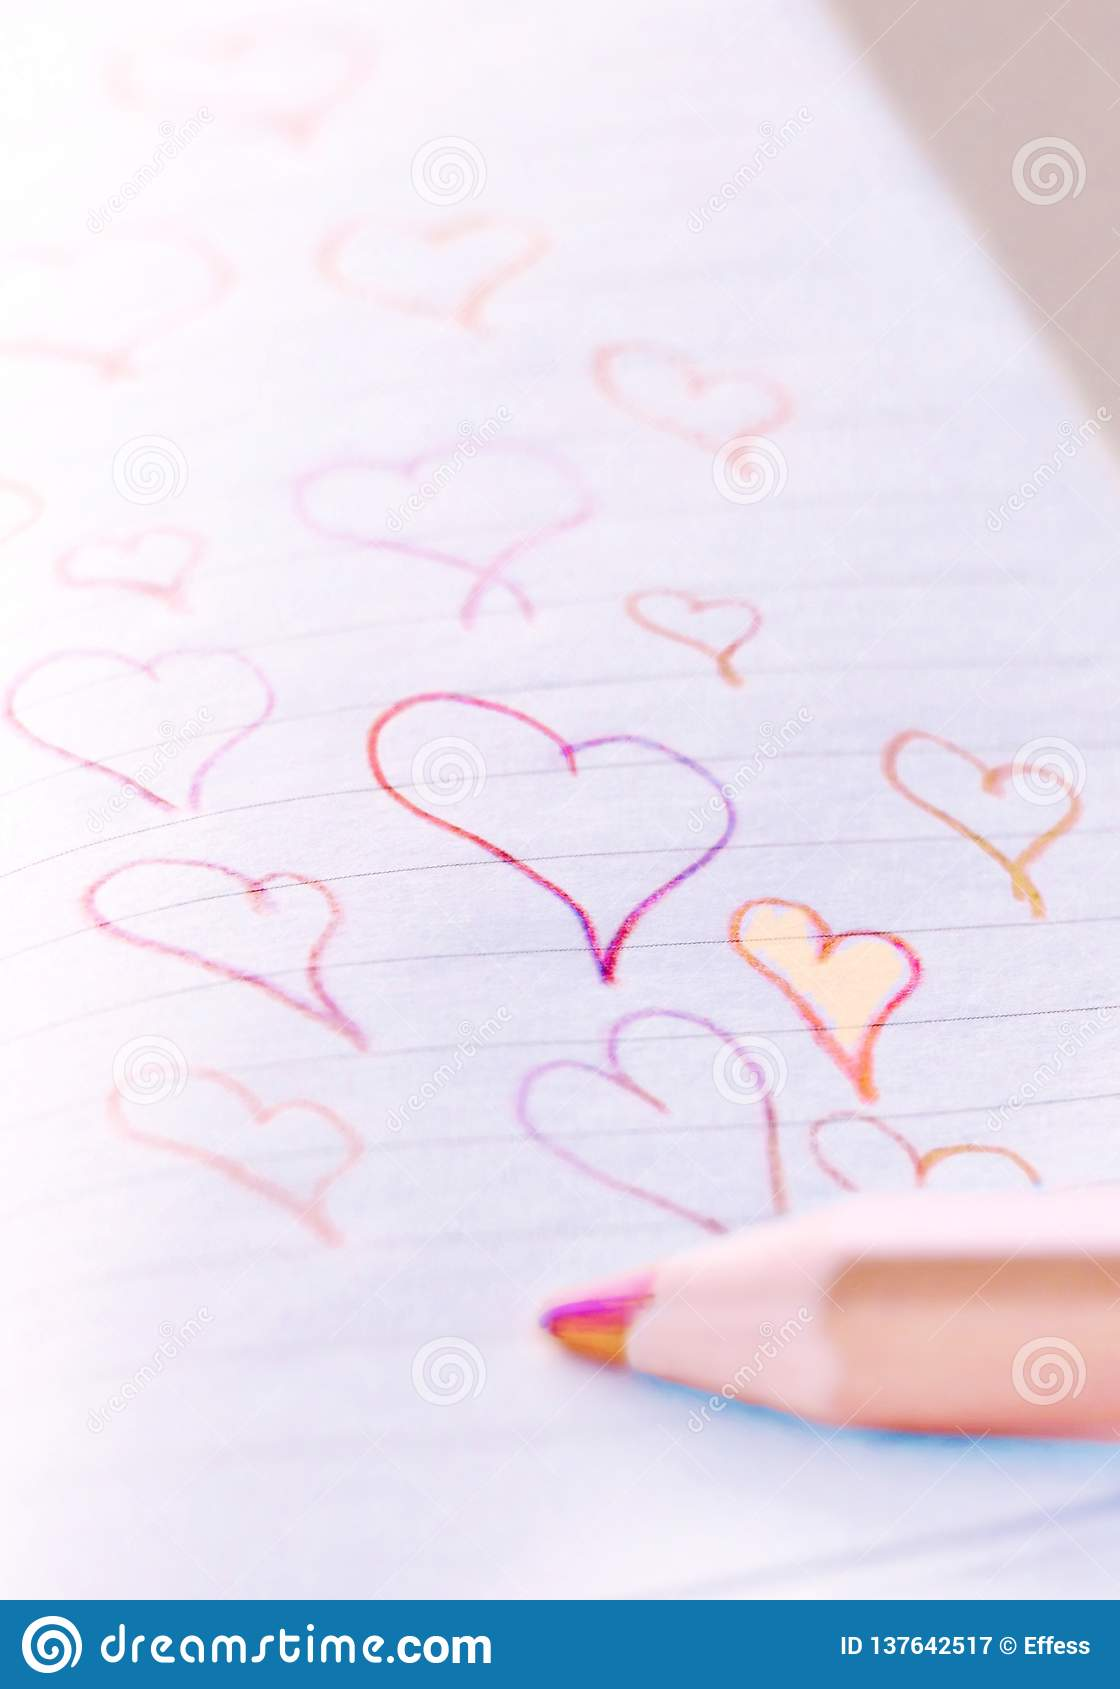 Love Concept. Red and Orange Heart Doodles